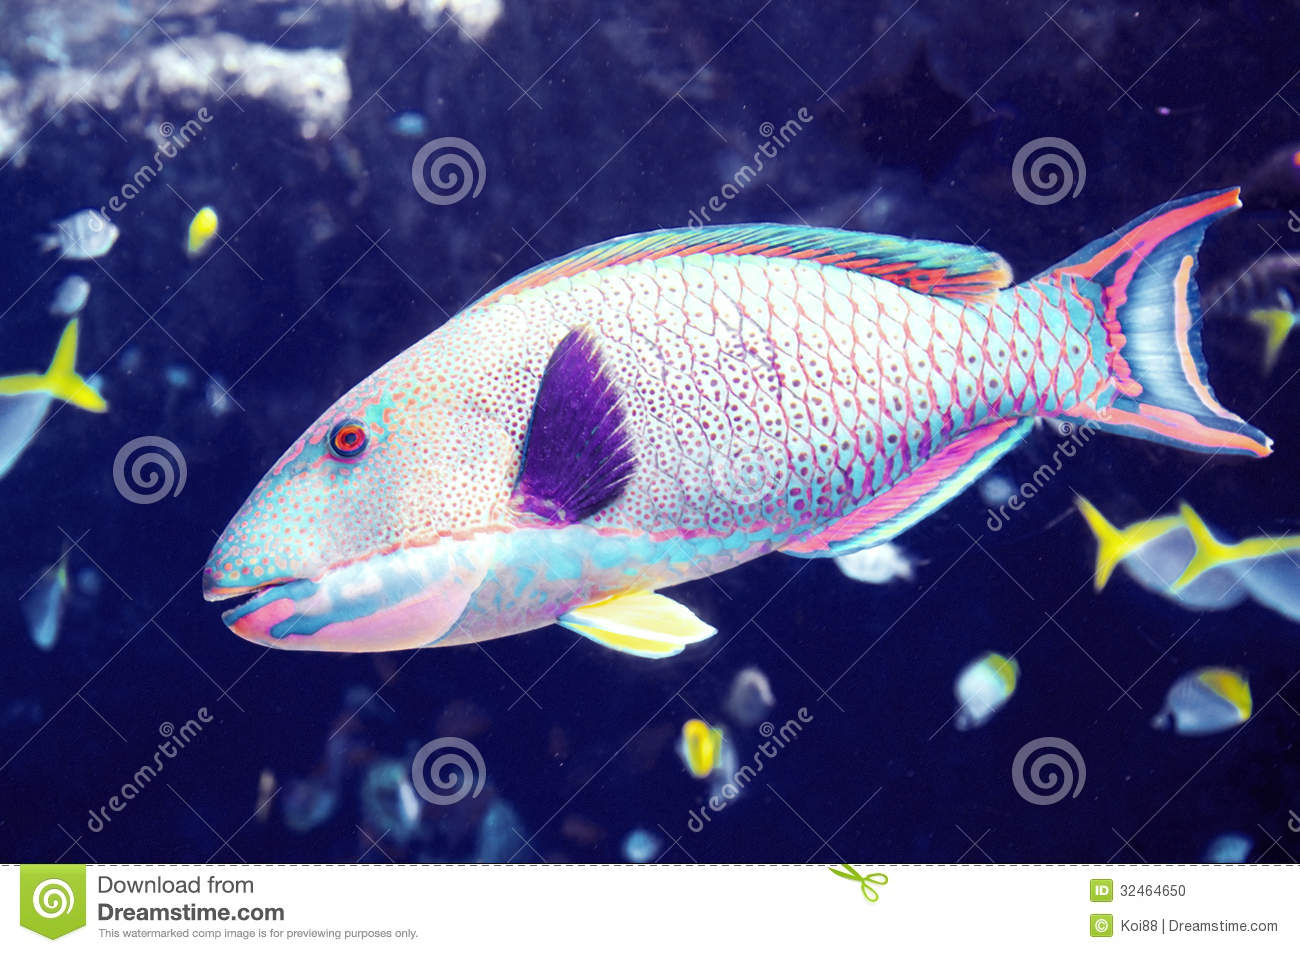 Large tropical fish underwater in a reef.